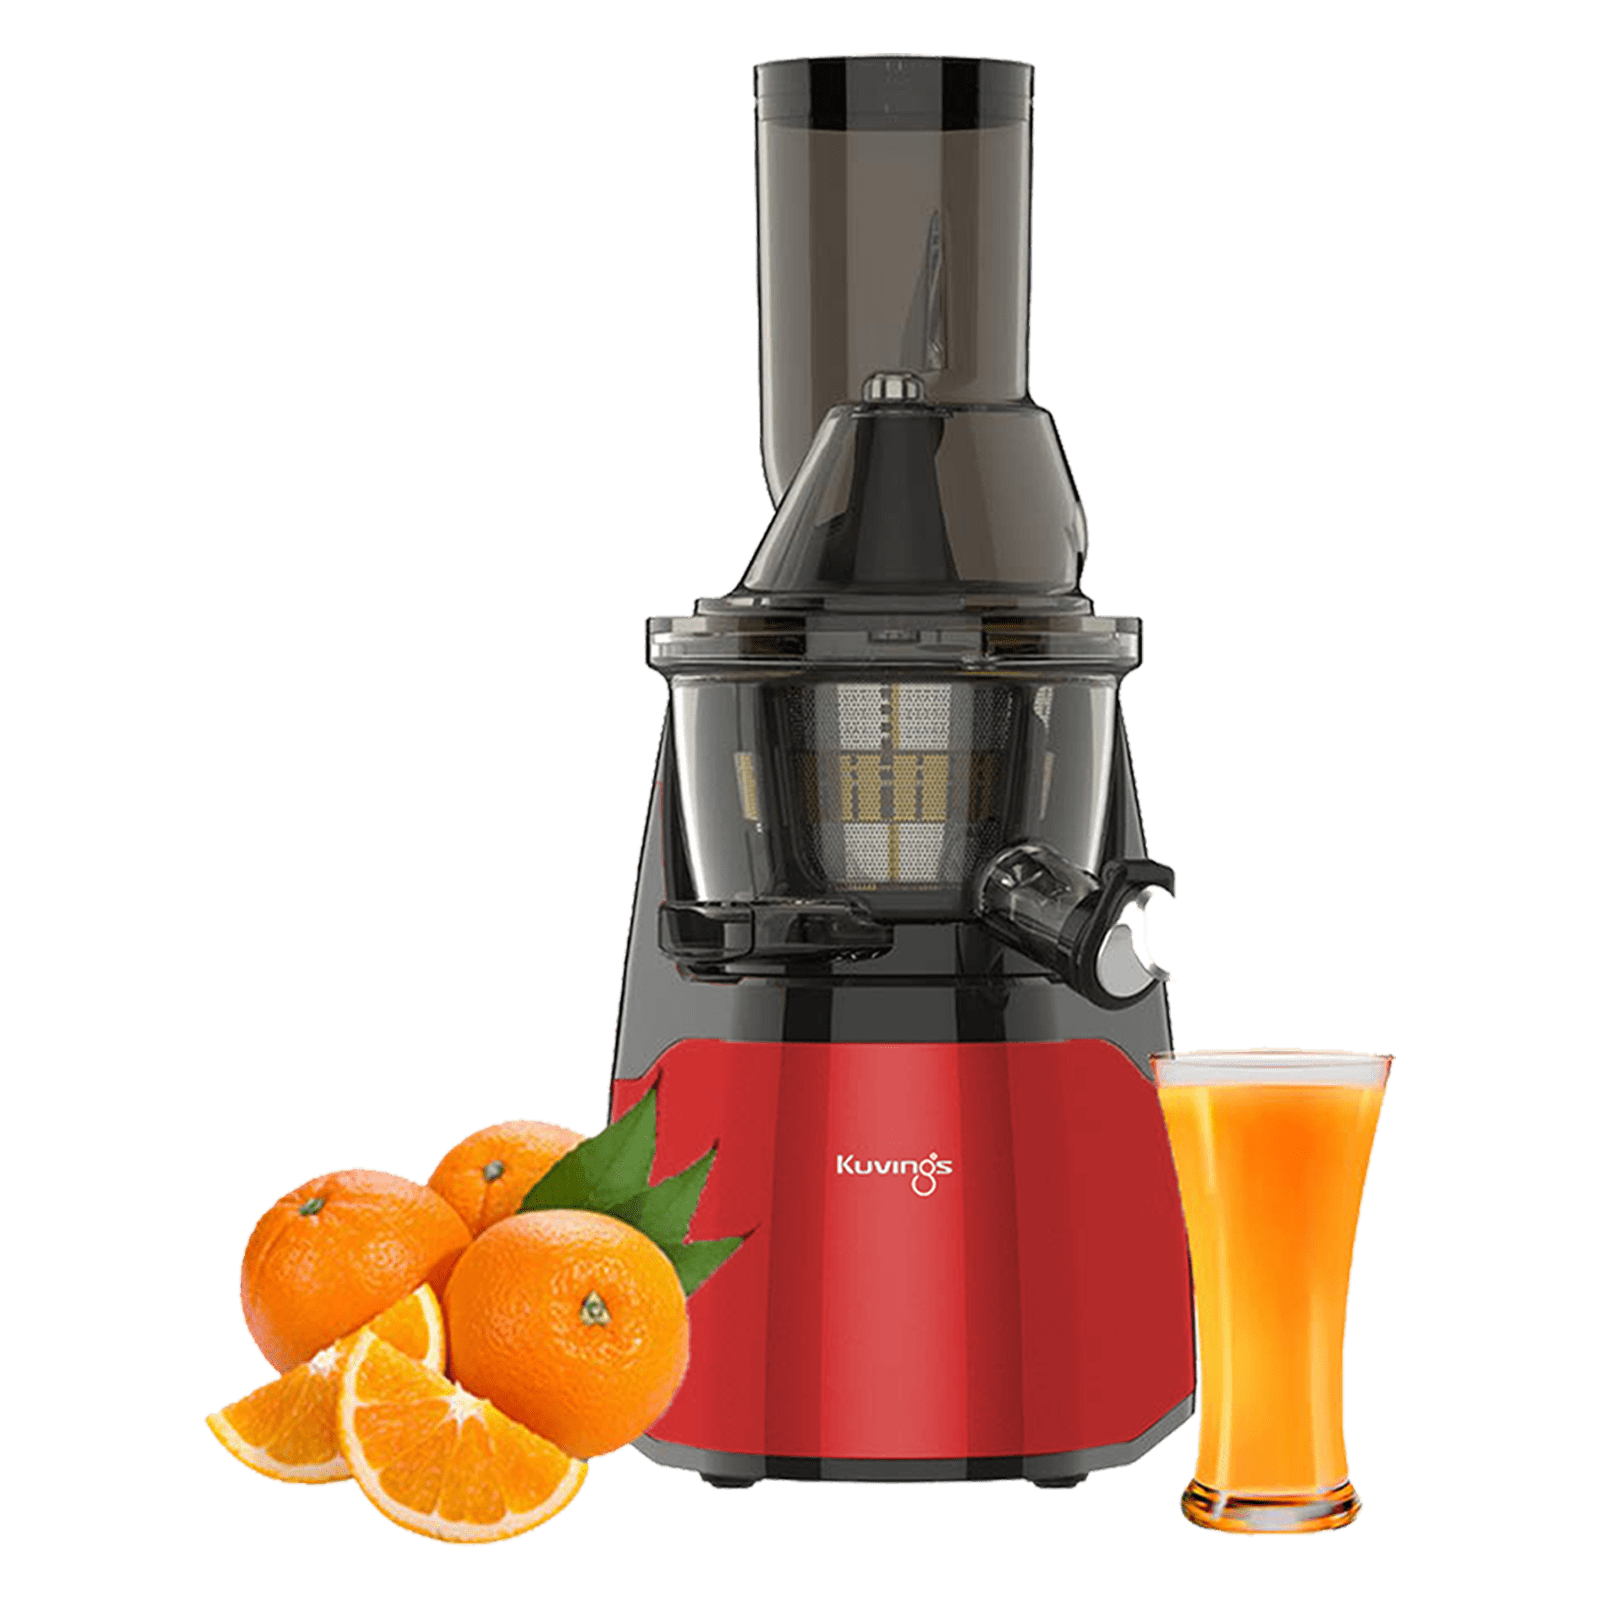 Kuvings 240 Watts 1 Blade Cold Press Slow Juicer (Safety-Lock System, EVO700, Red)